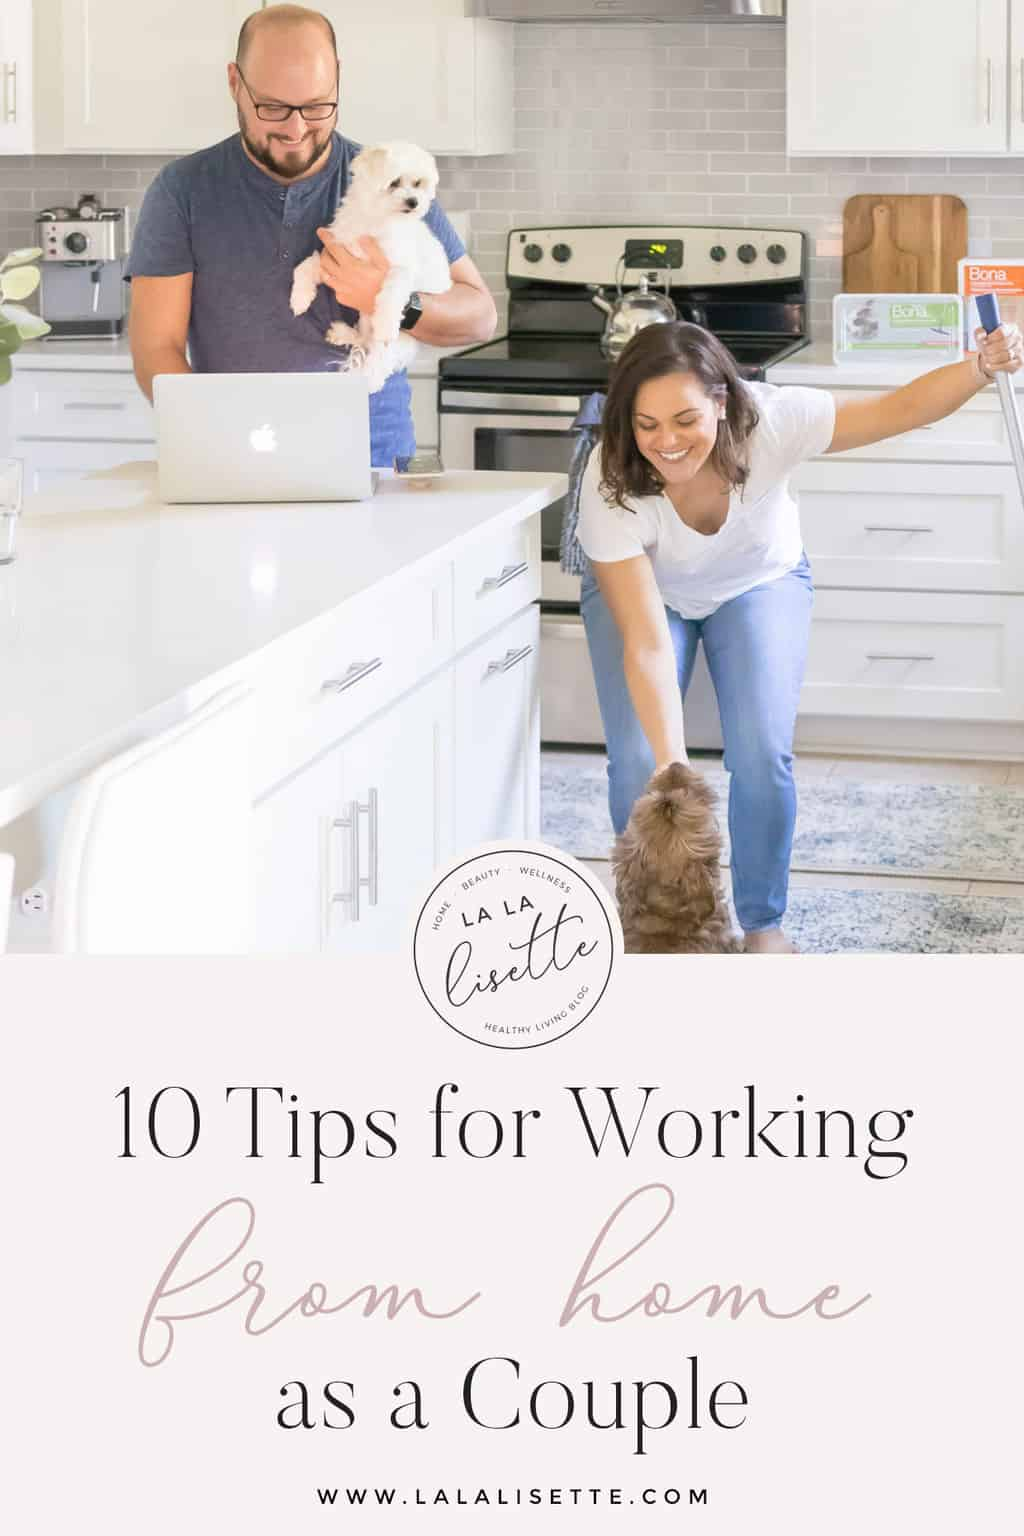 husband and wife working from home with text: 10 Tips for Working from Home as a Couple